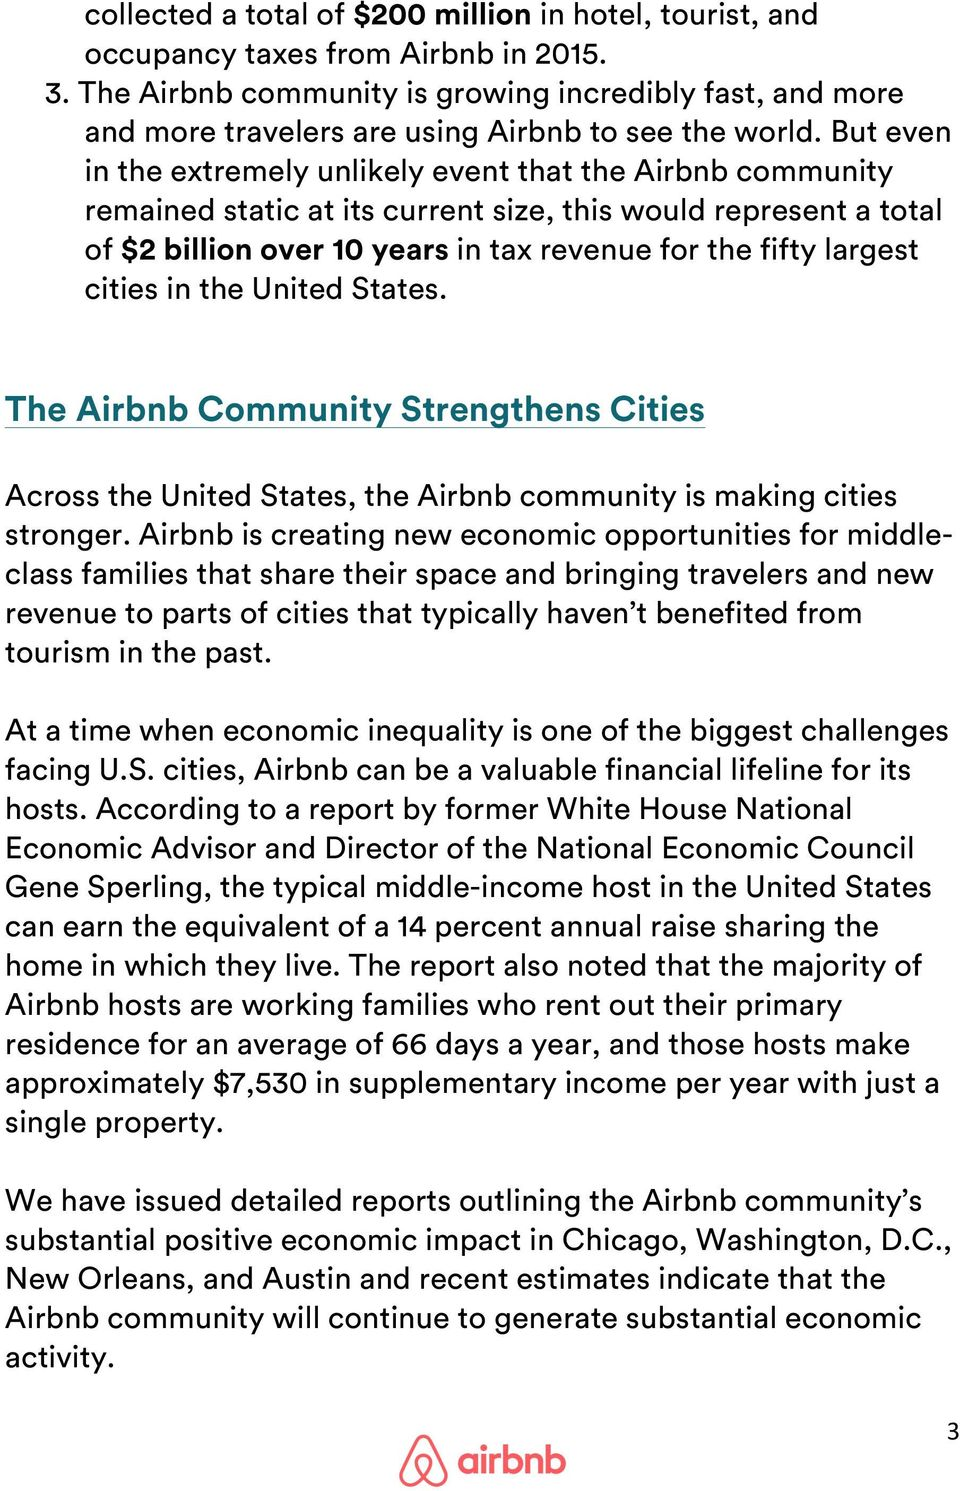 But even in the extremely unlikely event that the Airbnb community remained static at its current size, this would represent a total of $2 billion over 10 years in tax revenue for the fifty largest